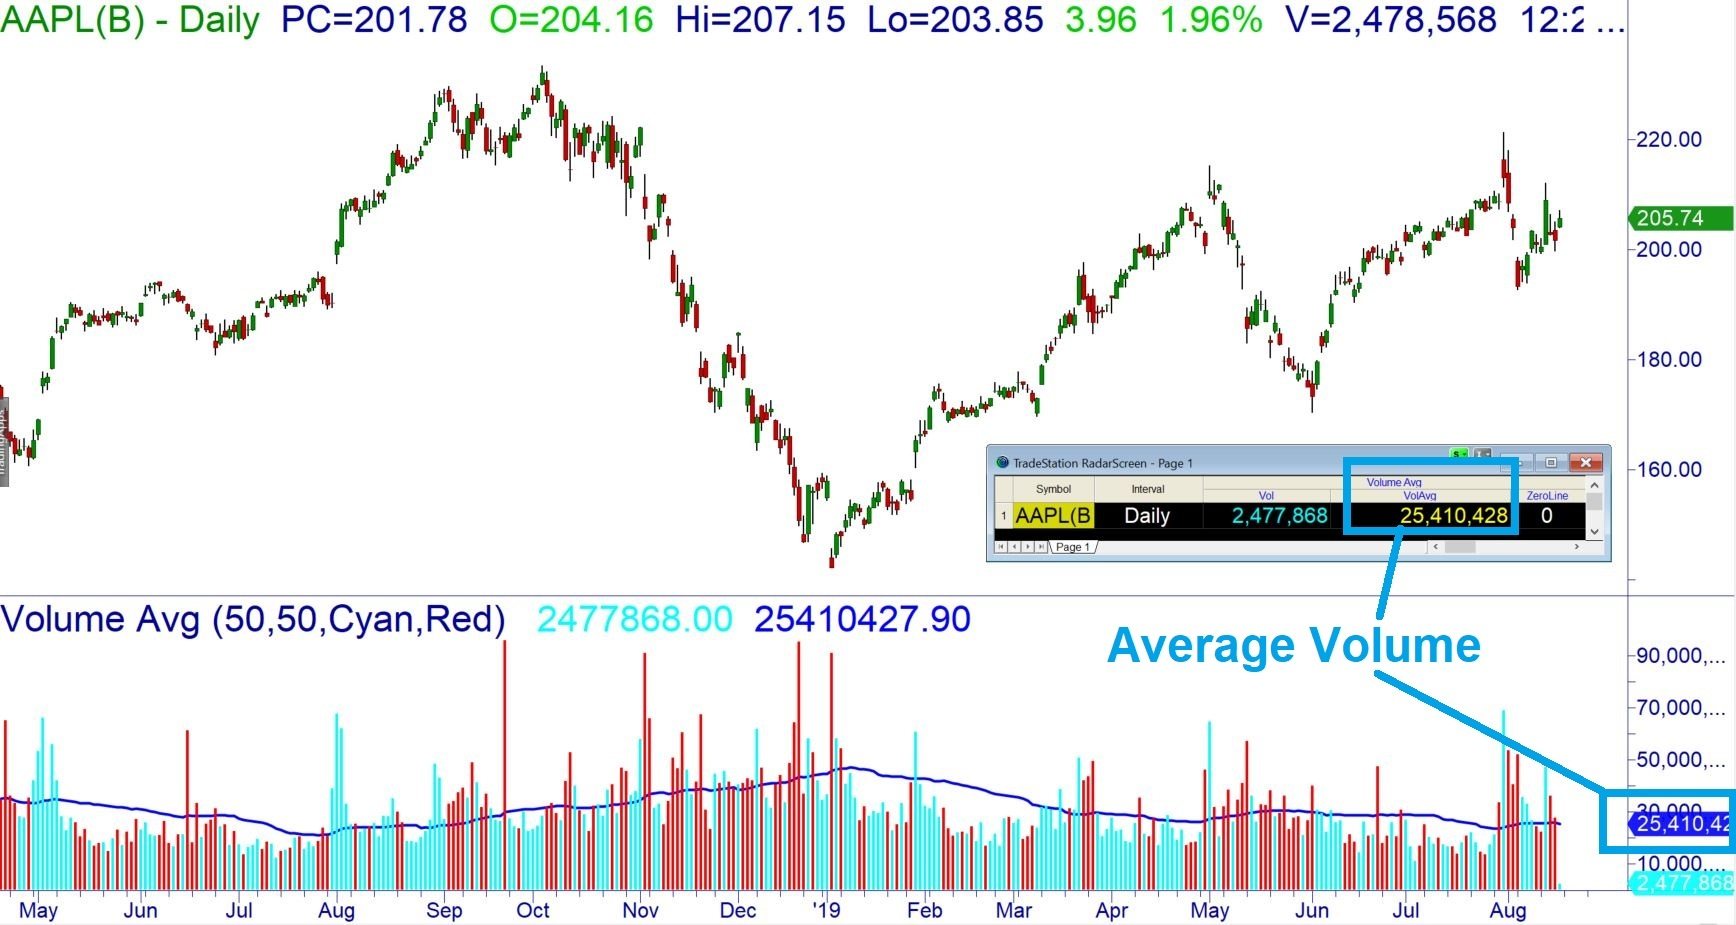 stock chart showing the average daily volume for AAPL